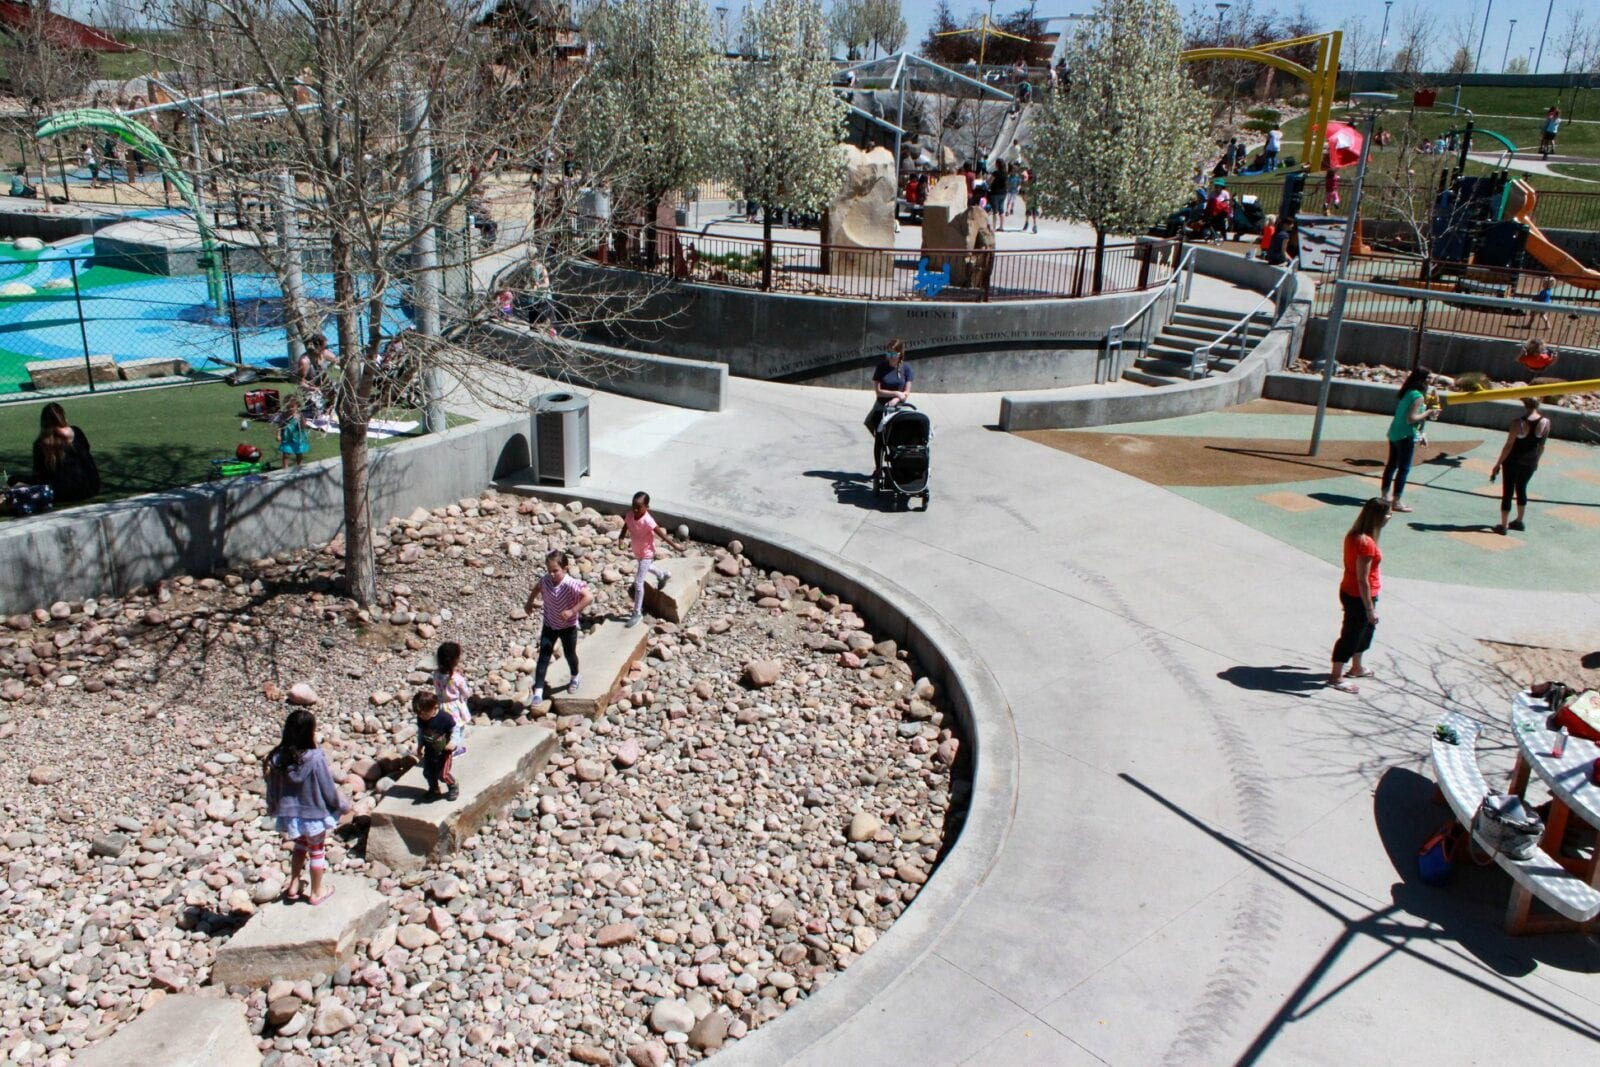 Image of the Centennial Center Park in Colorado with children playing